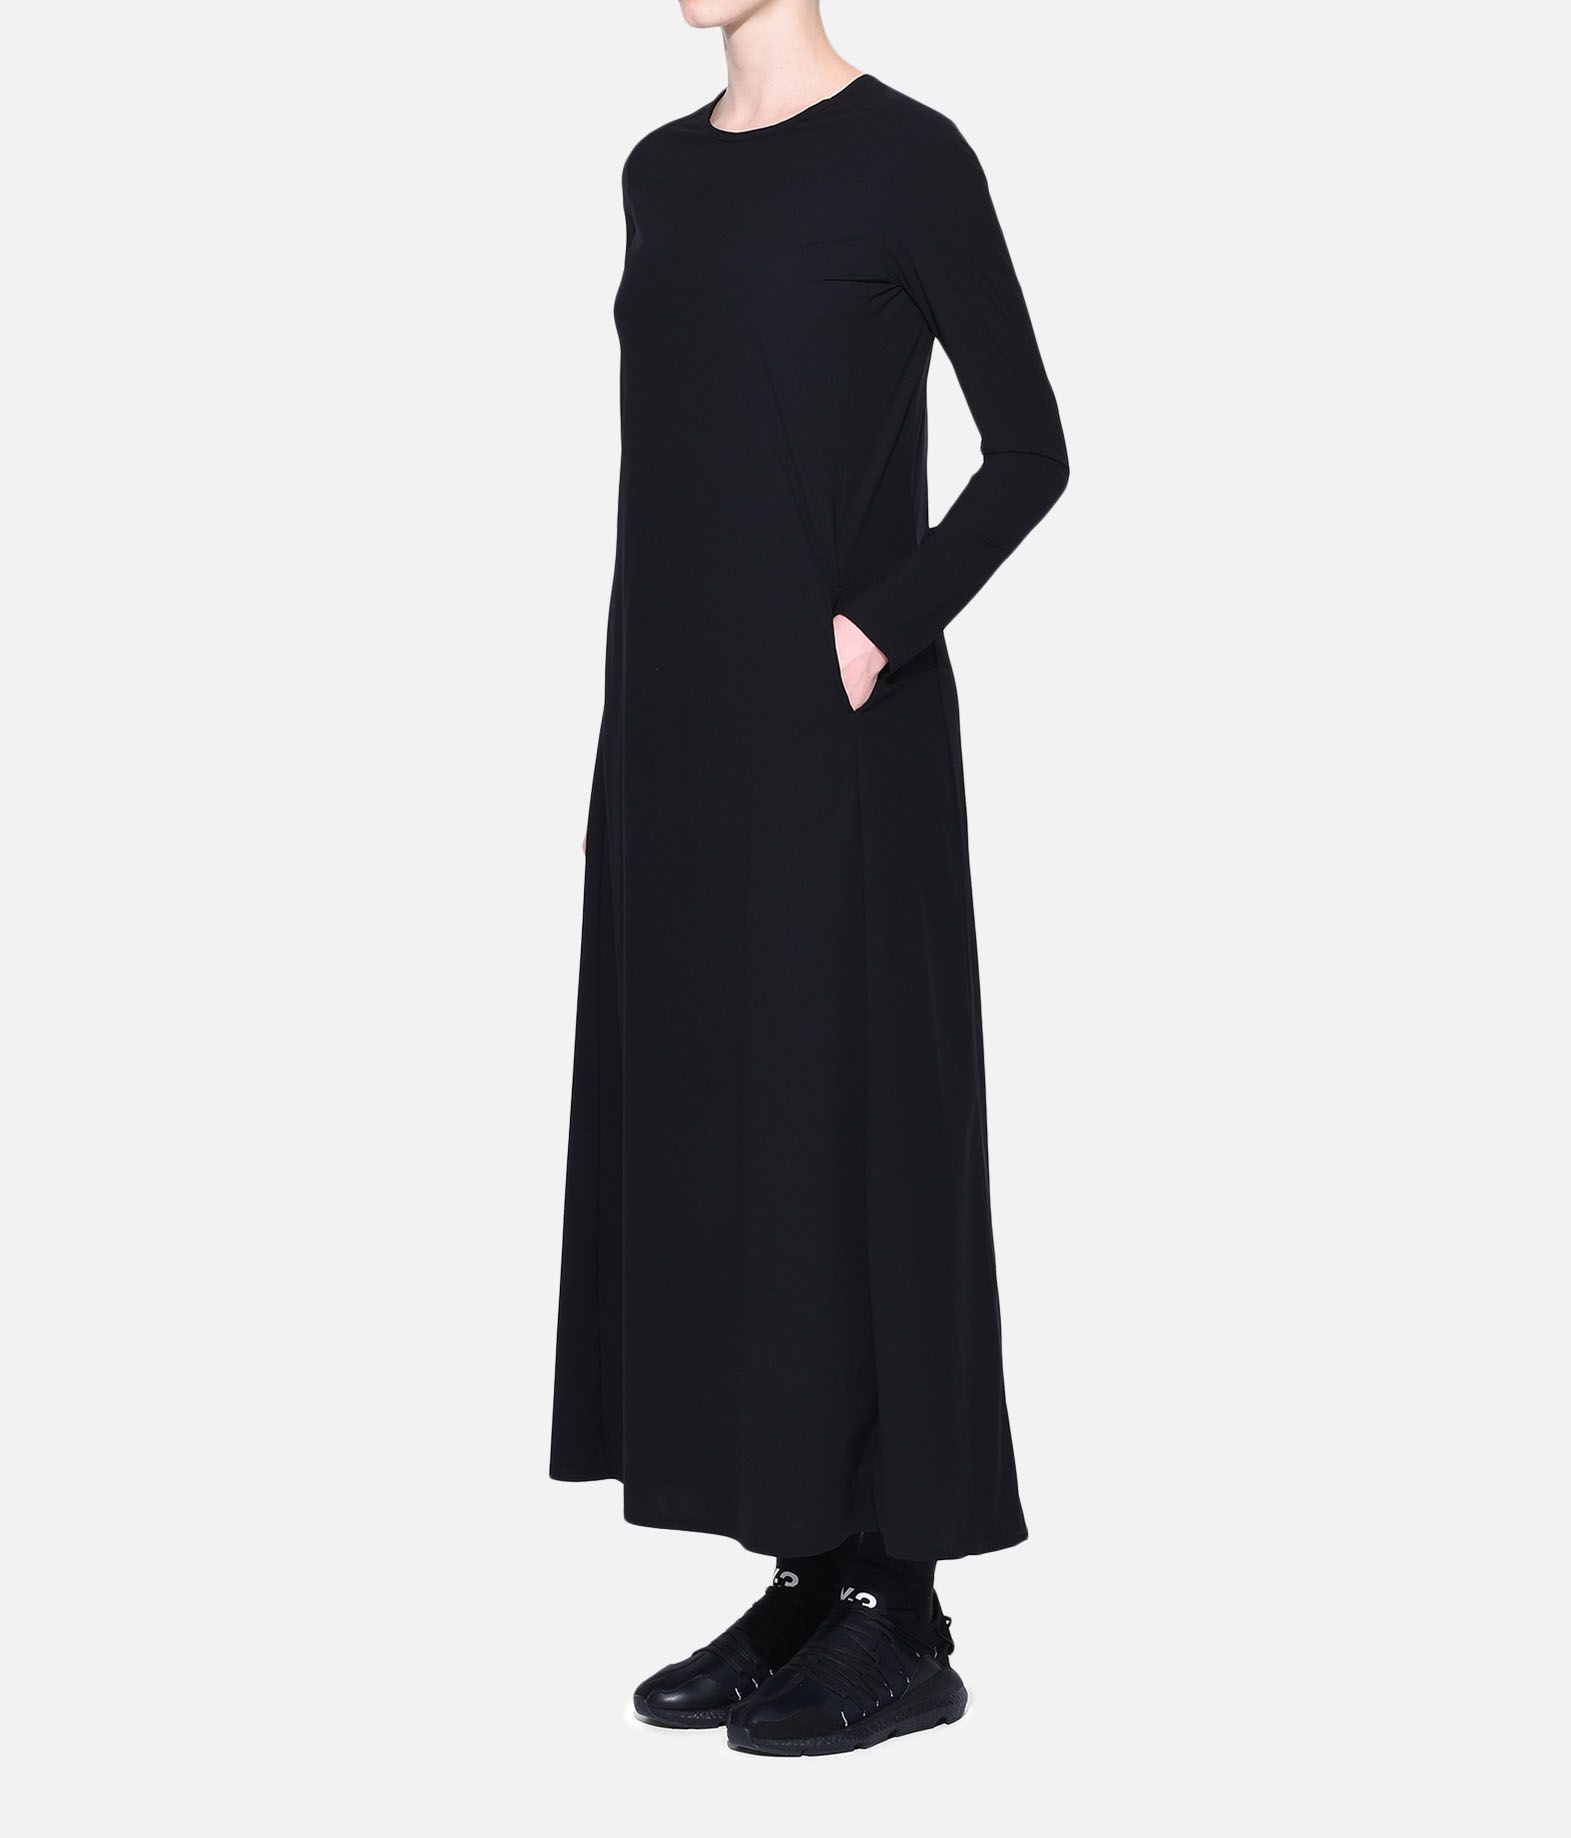 Y-3 Y-3 Stacked Logo Dress Vestito lungo Donna e